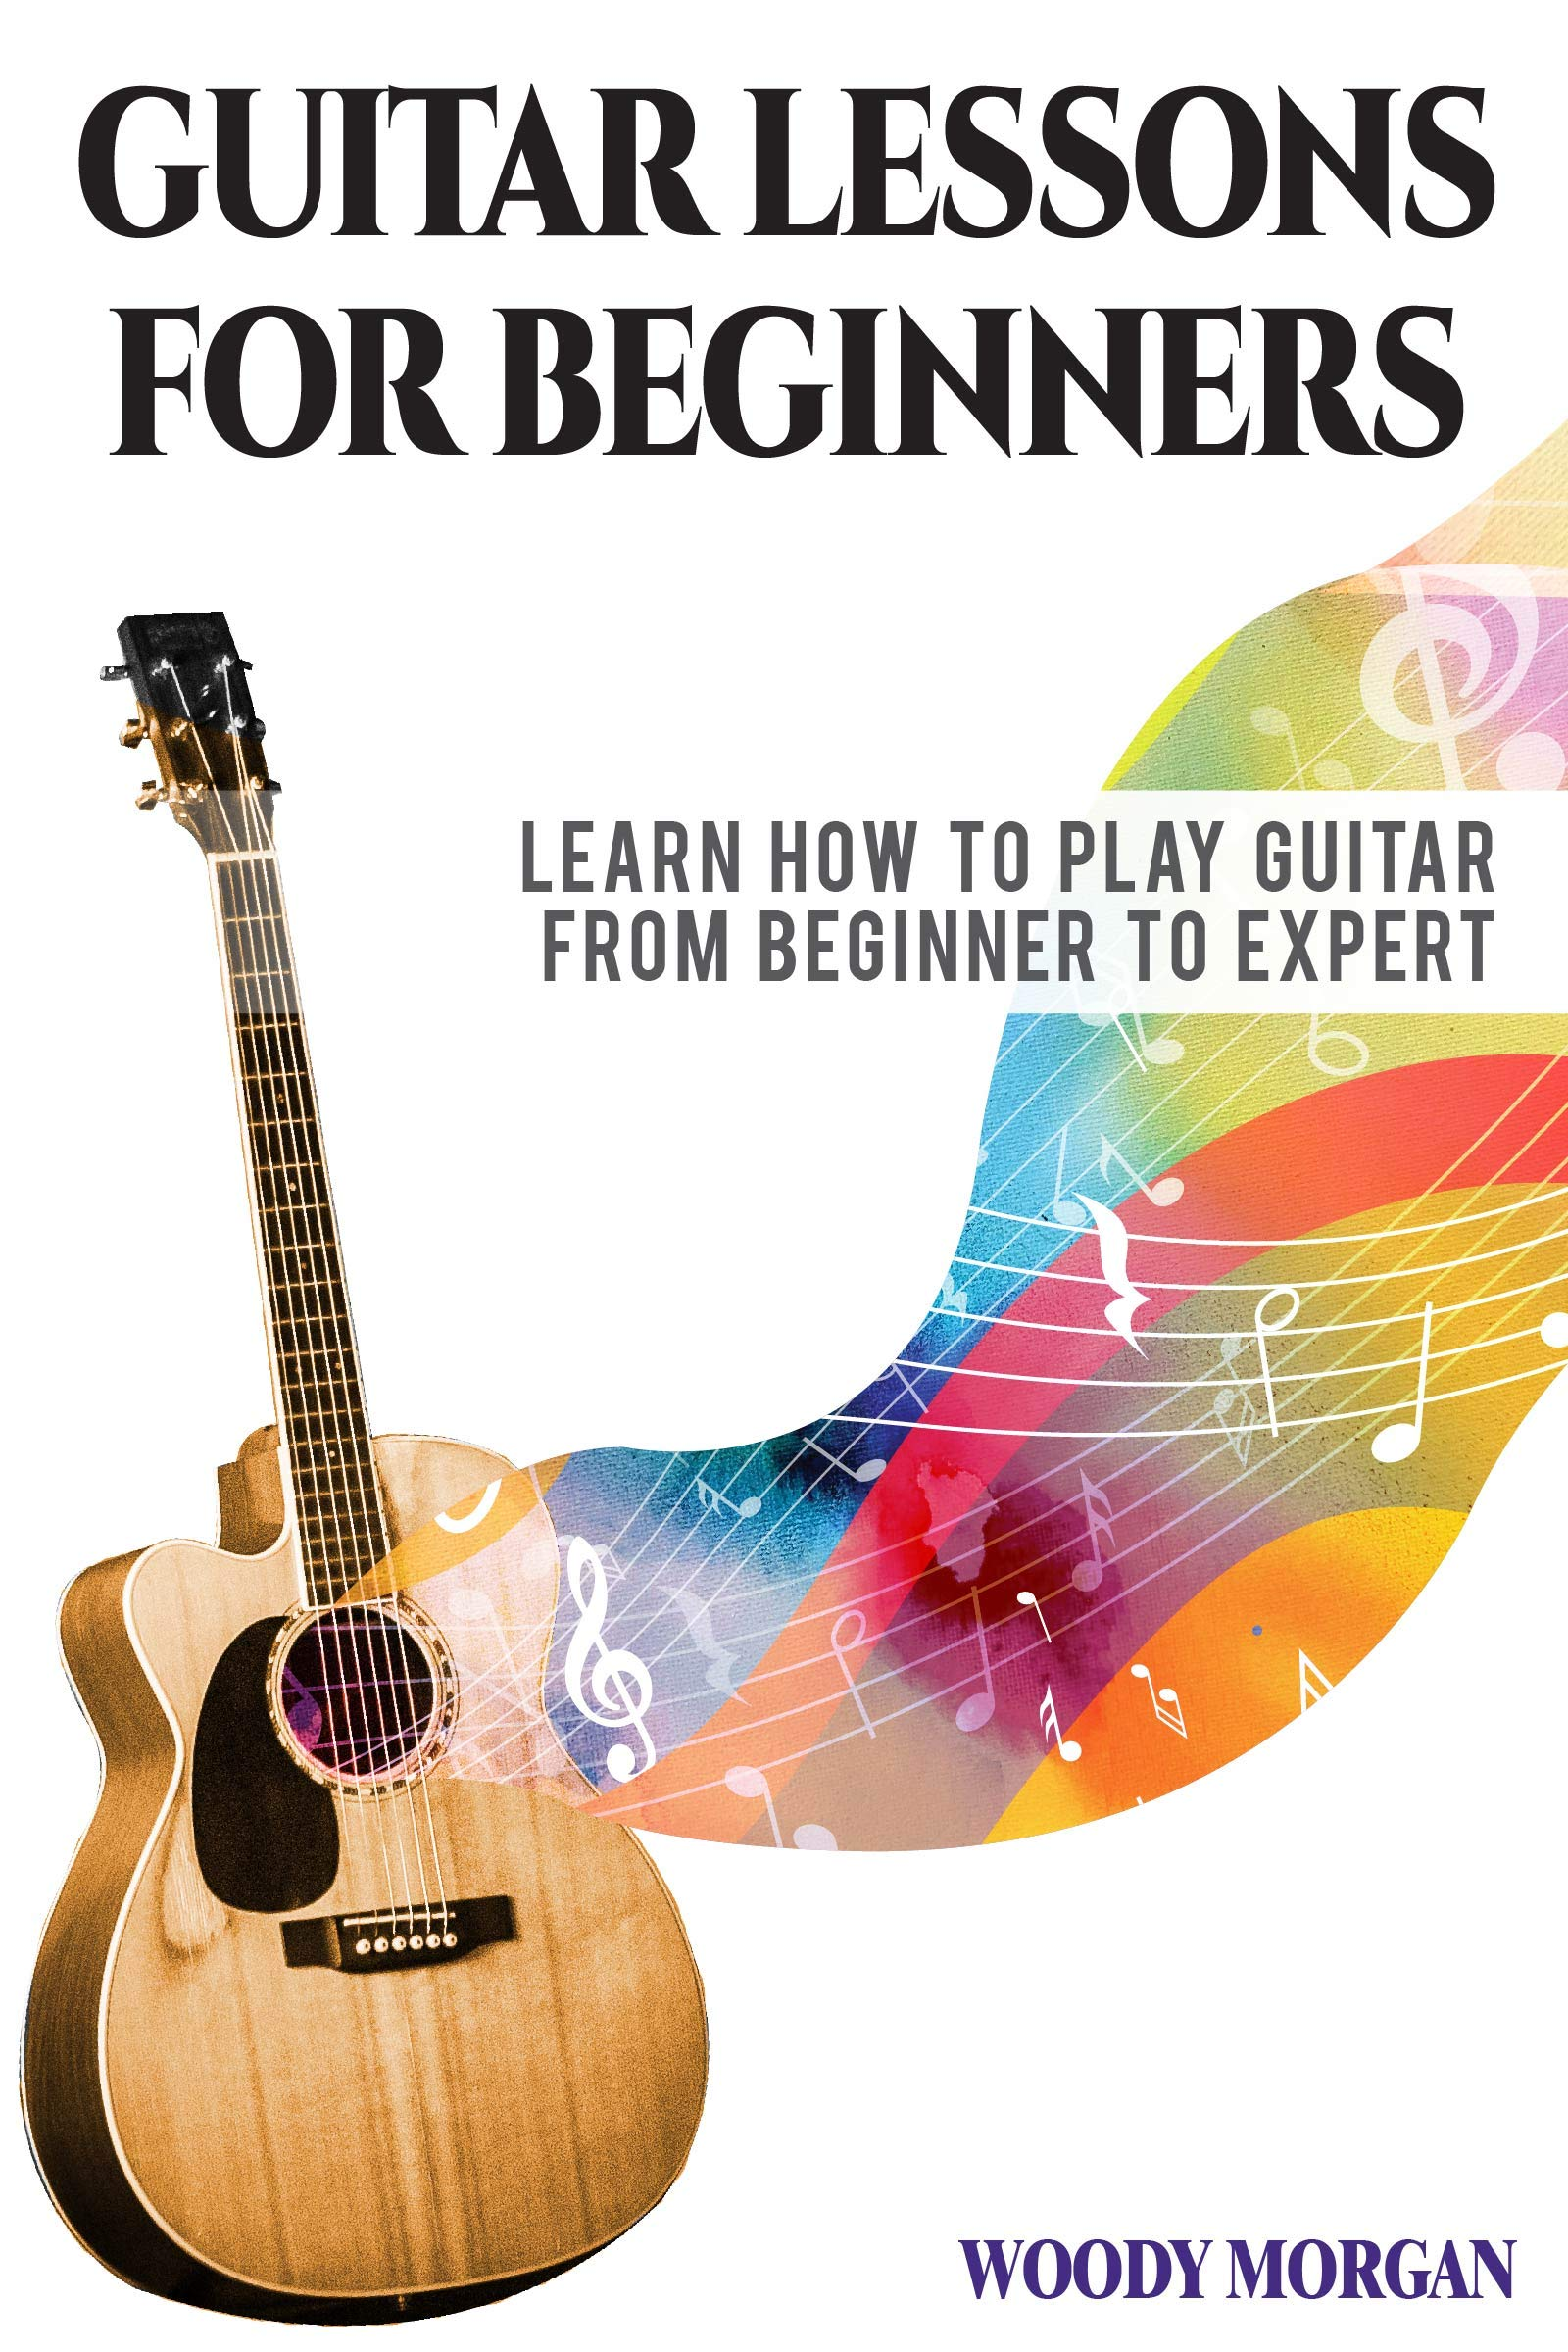 Guitar Lessons for Beginners: Learn How to Play Guitar from Beginner to Expert - Chords, Technique, Fretboard and Music Theory